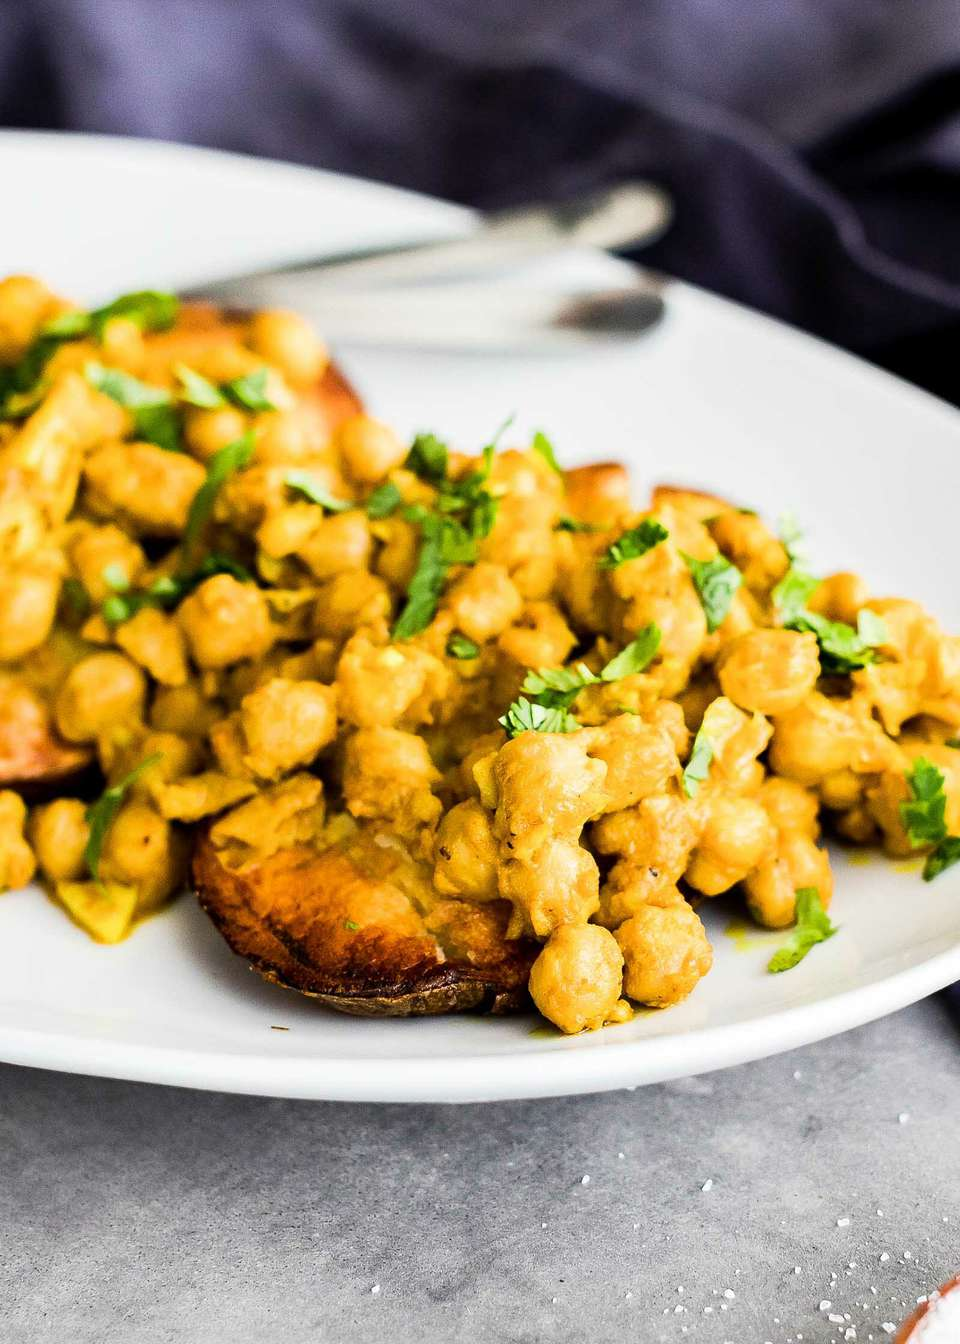 Vegetarian Baked Potatoes with Chickpeas